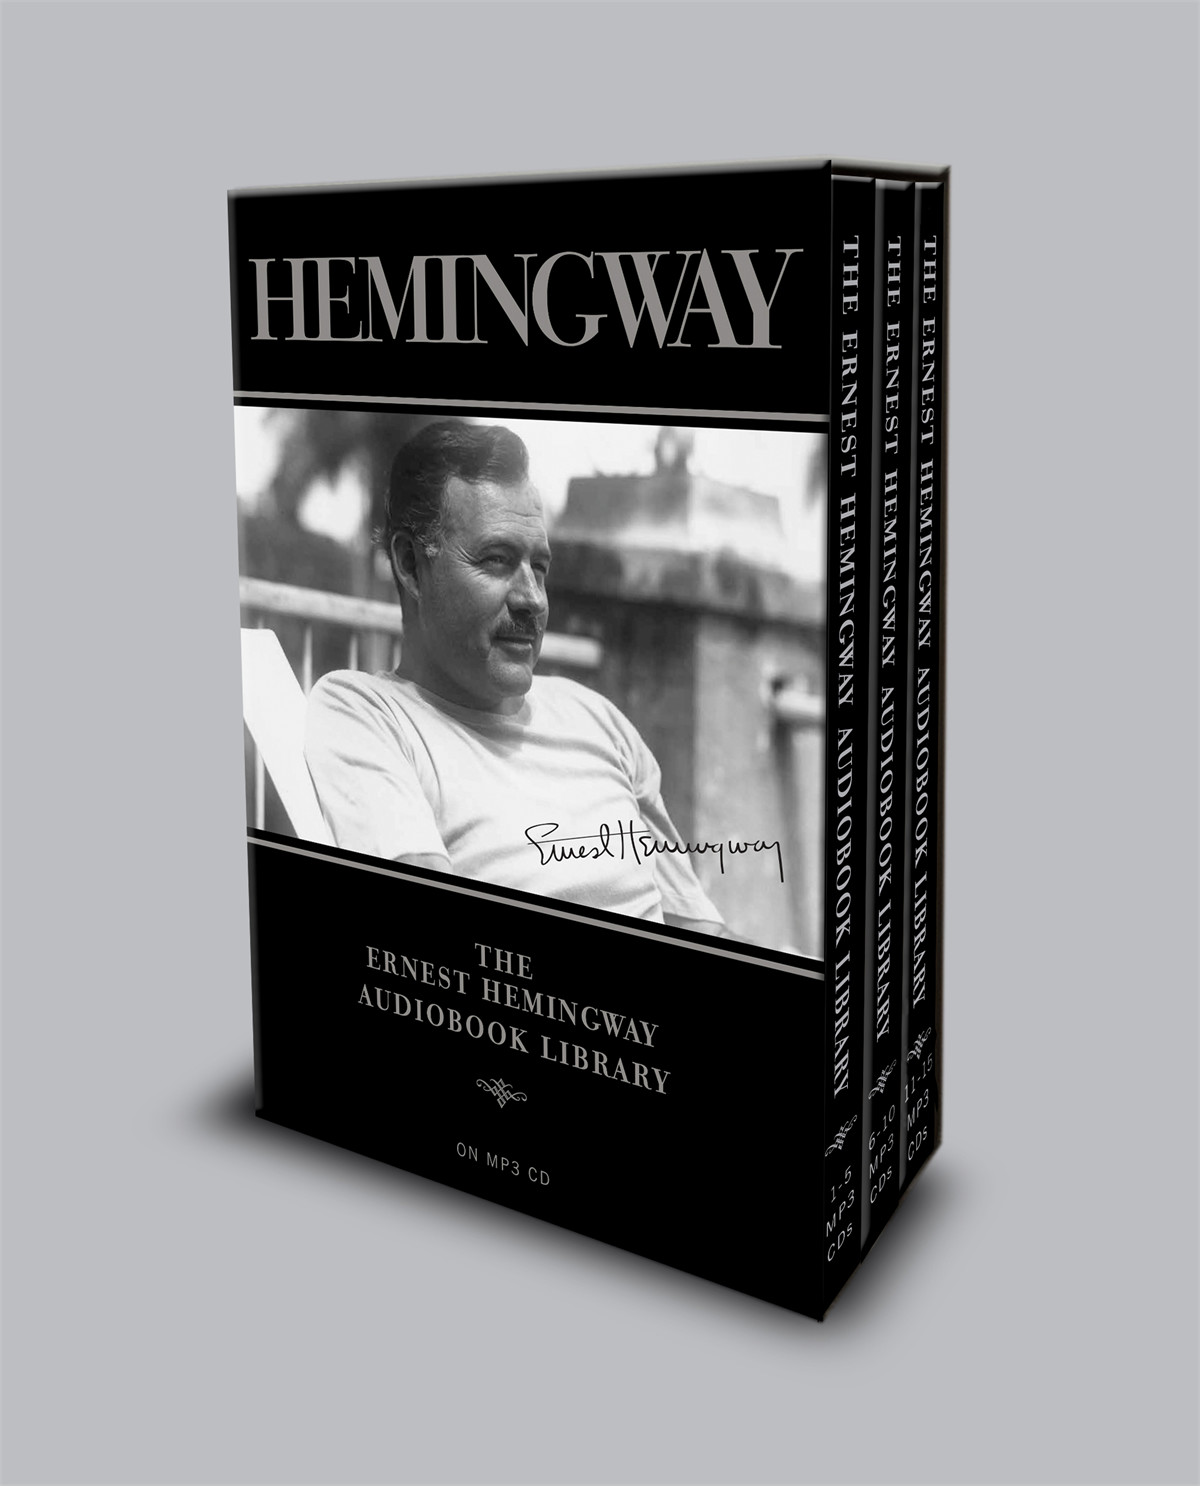 The-ernest-hemingway-audiobook-library-9781442359444.in01